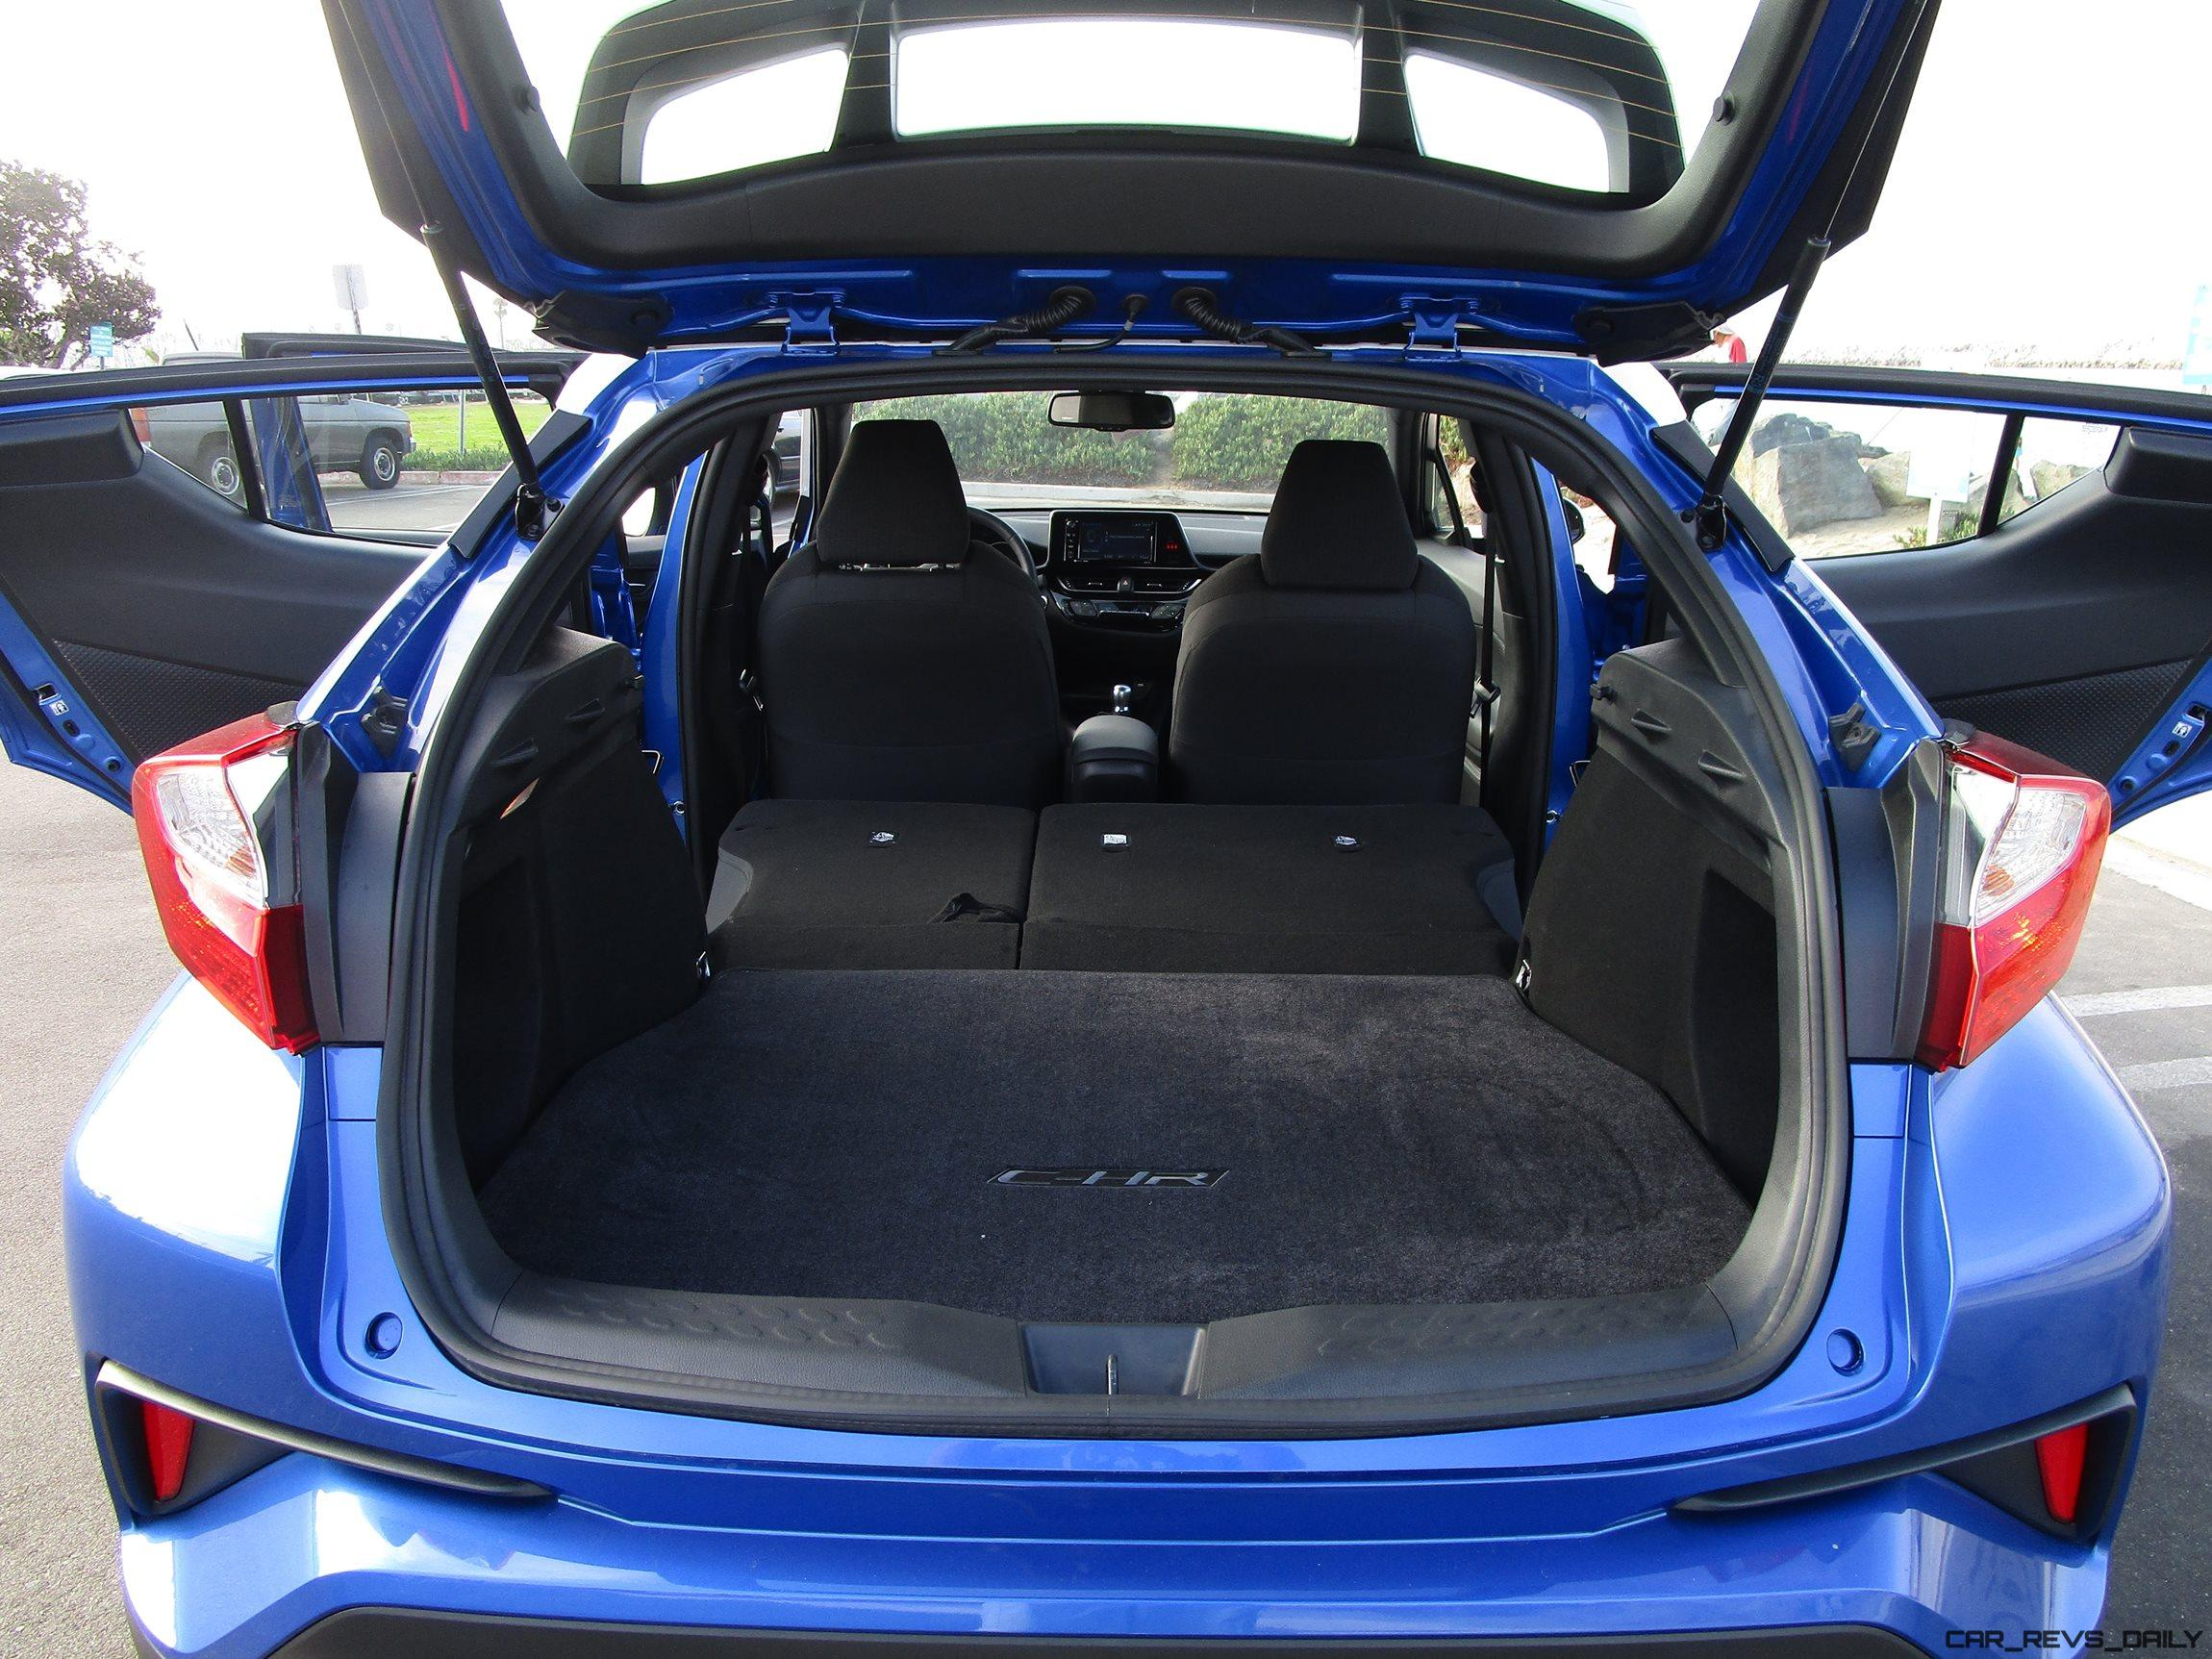 ... Cargo Space Is Excellent, And Since The C-HR Offered Only In Front  Wheel Drive\u2013 No Rear Drivetrain To Get Way \u2013 60/40 Split Seats